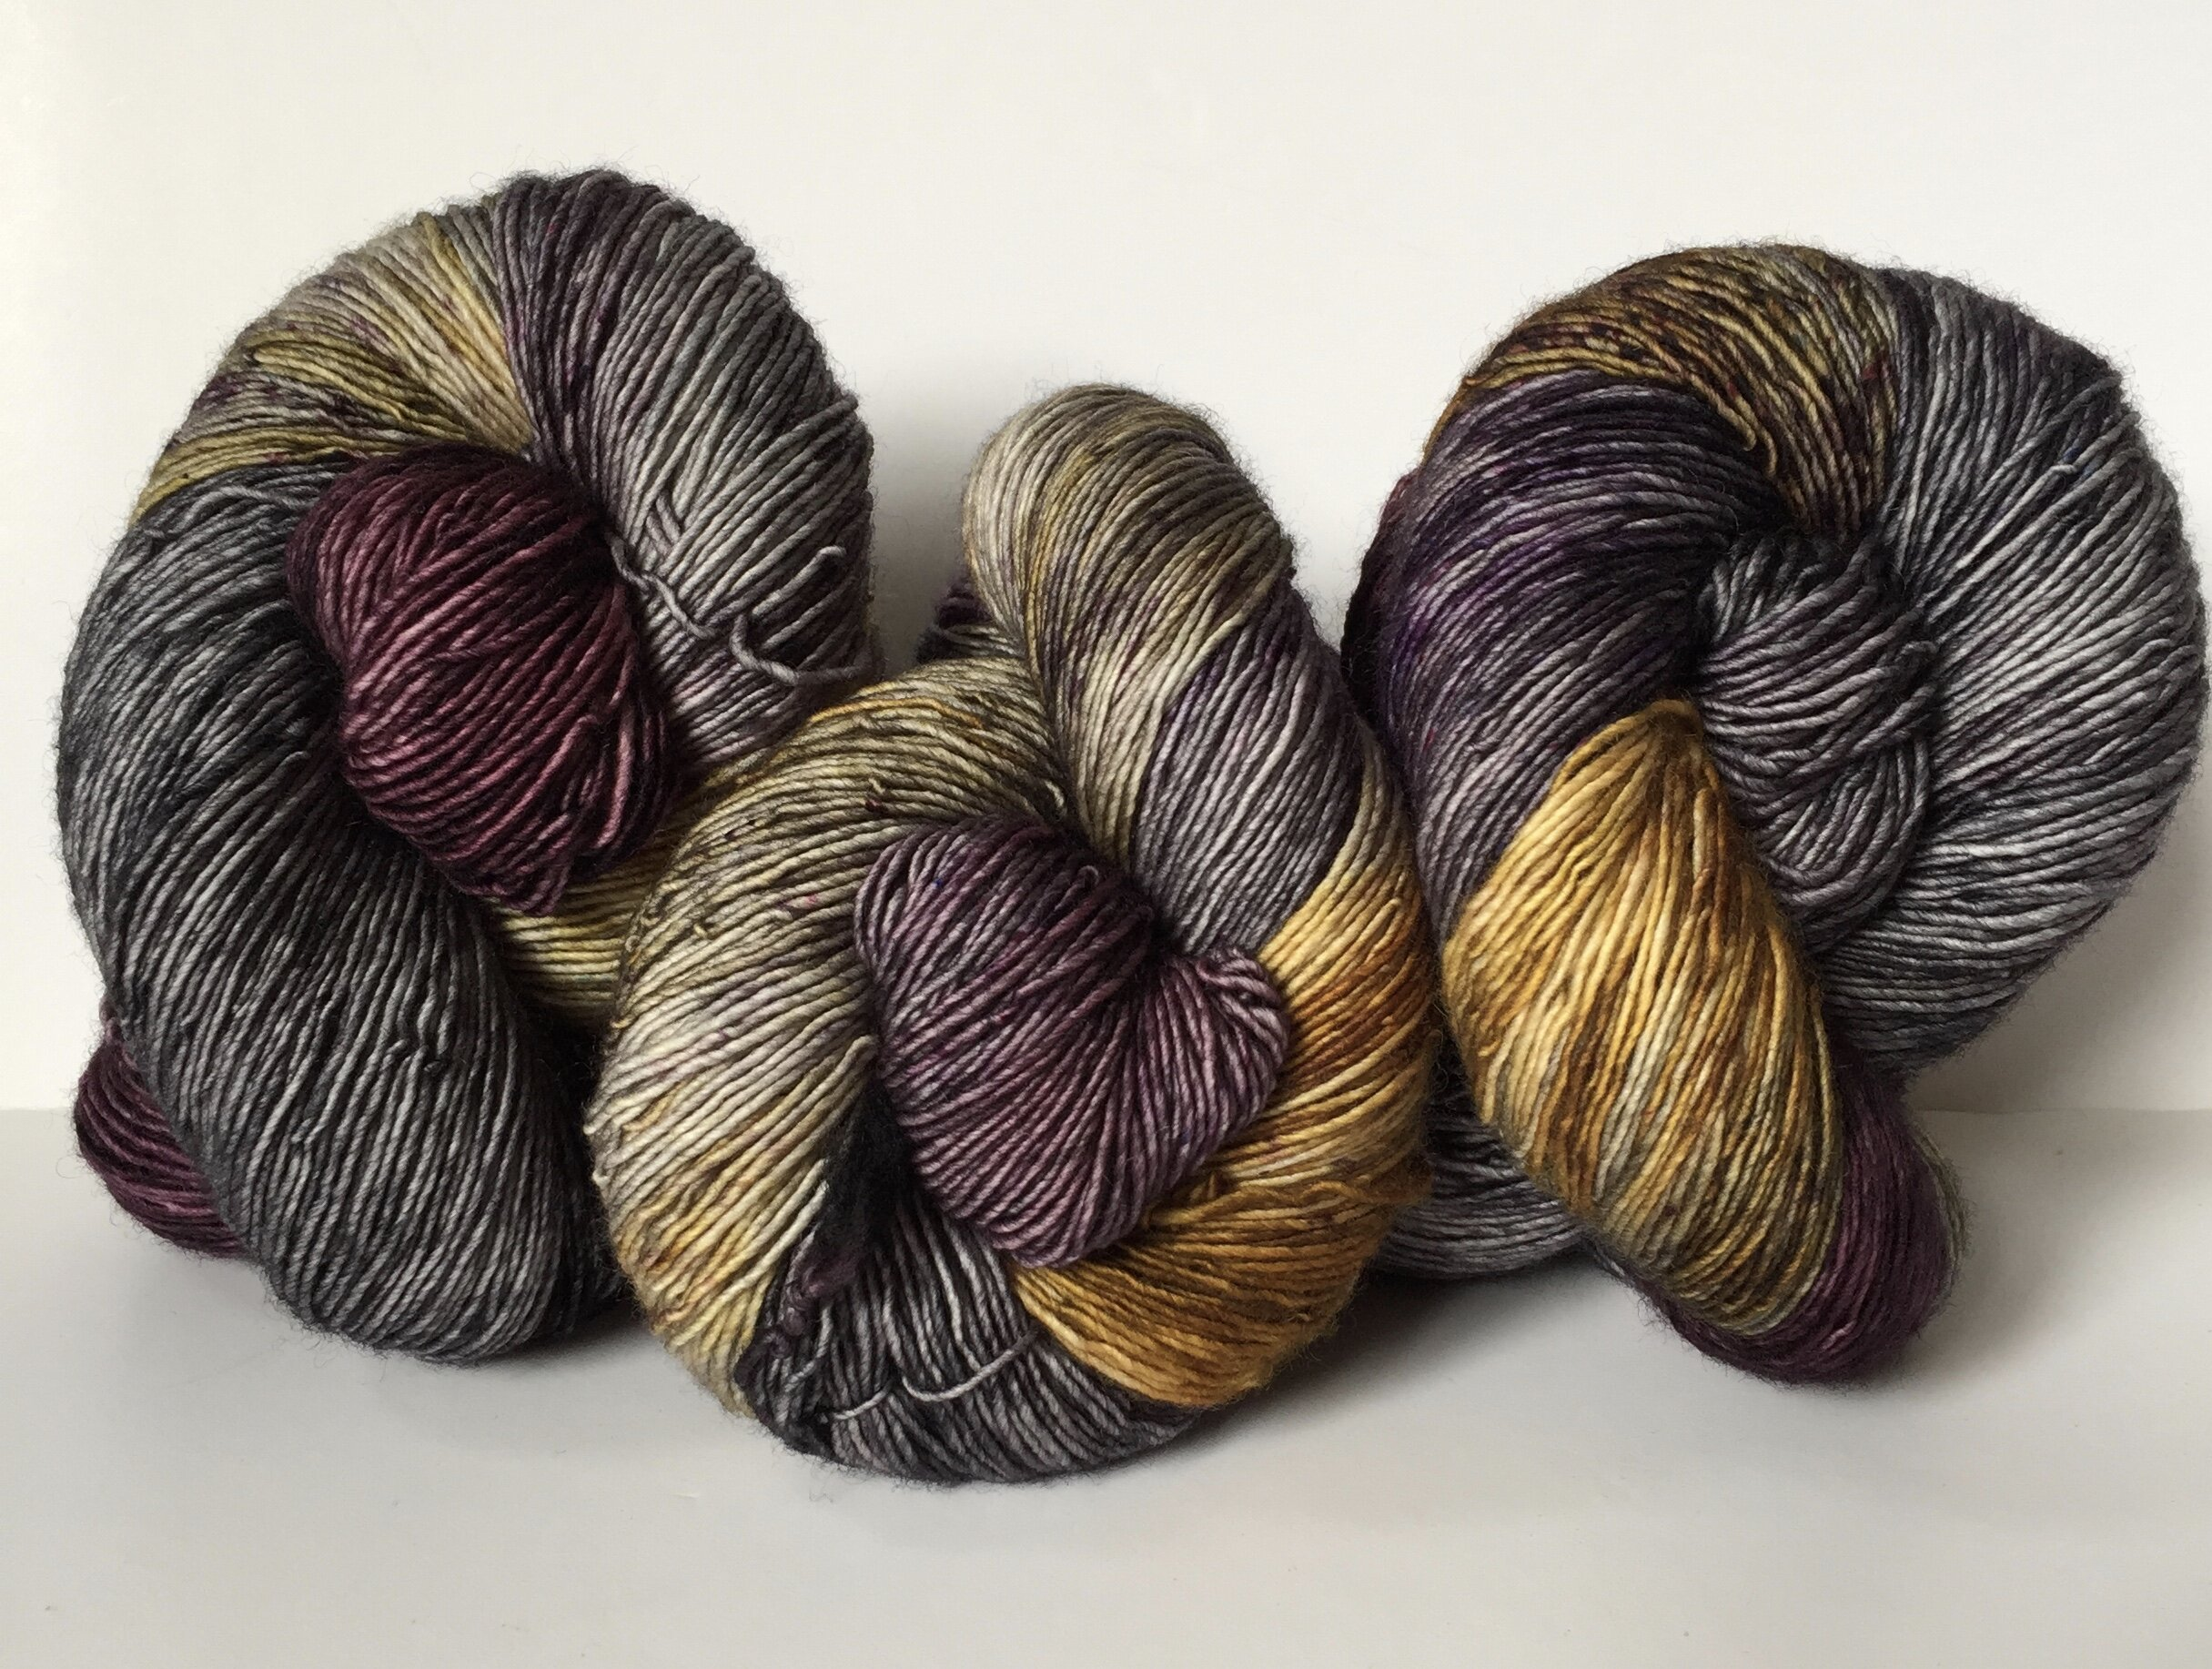 Obsession on Merino Singles, a variegated charcoal, gold and aubergine with speckles